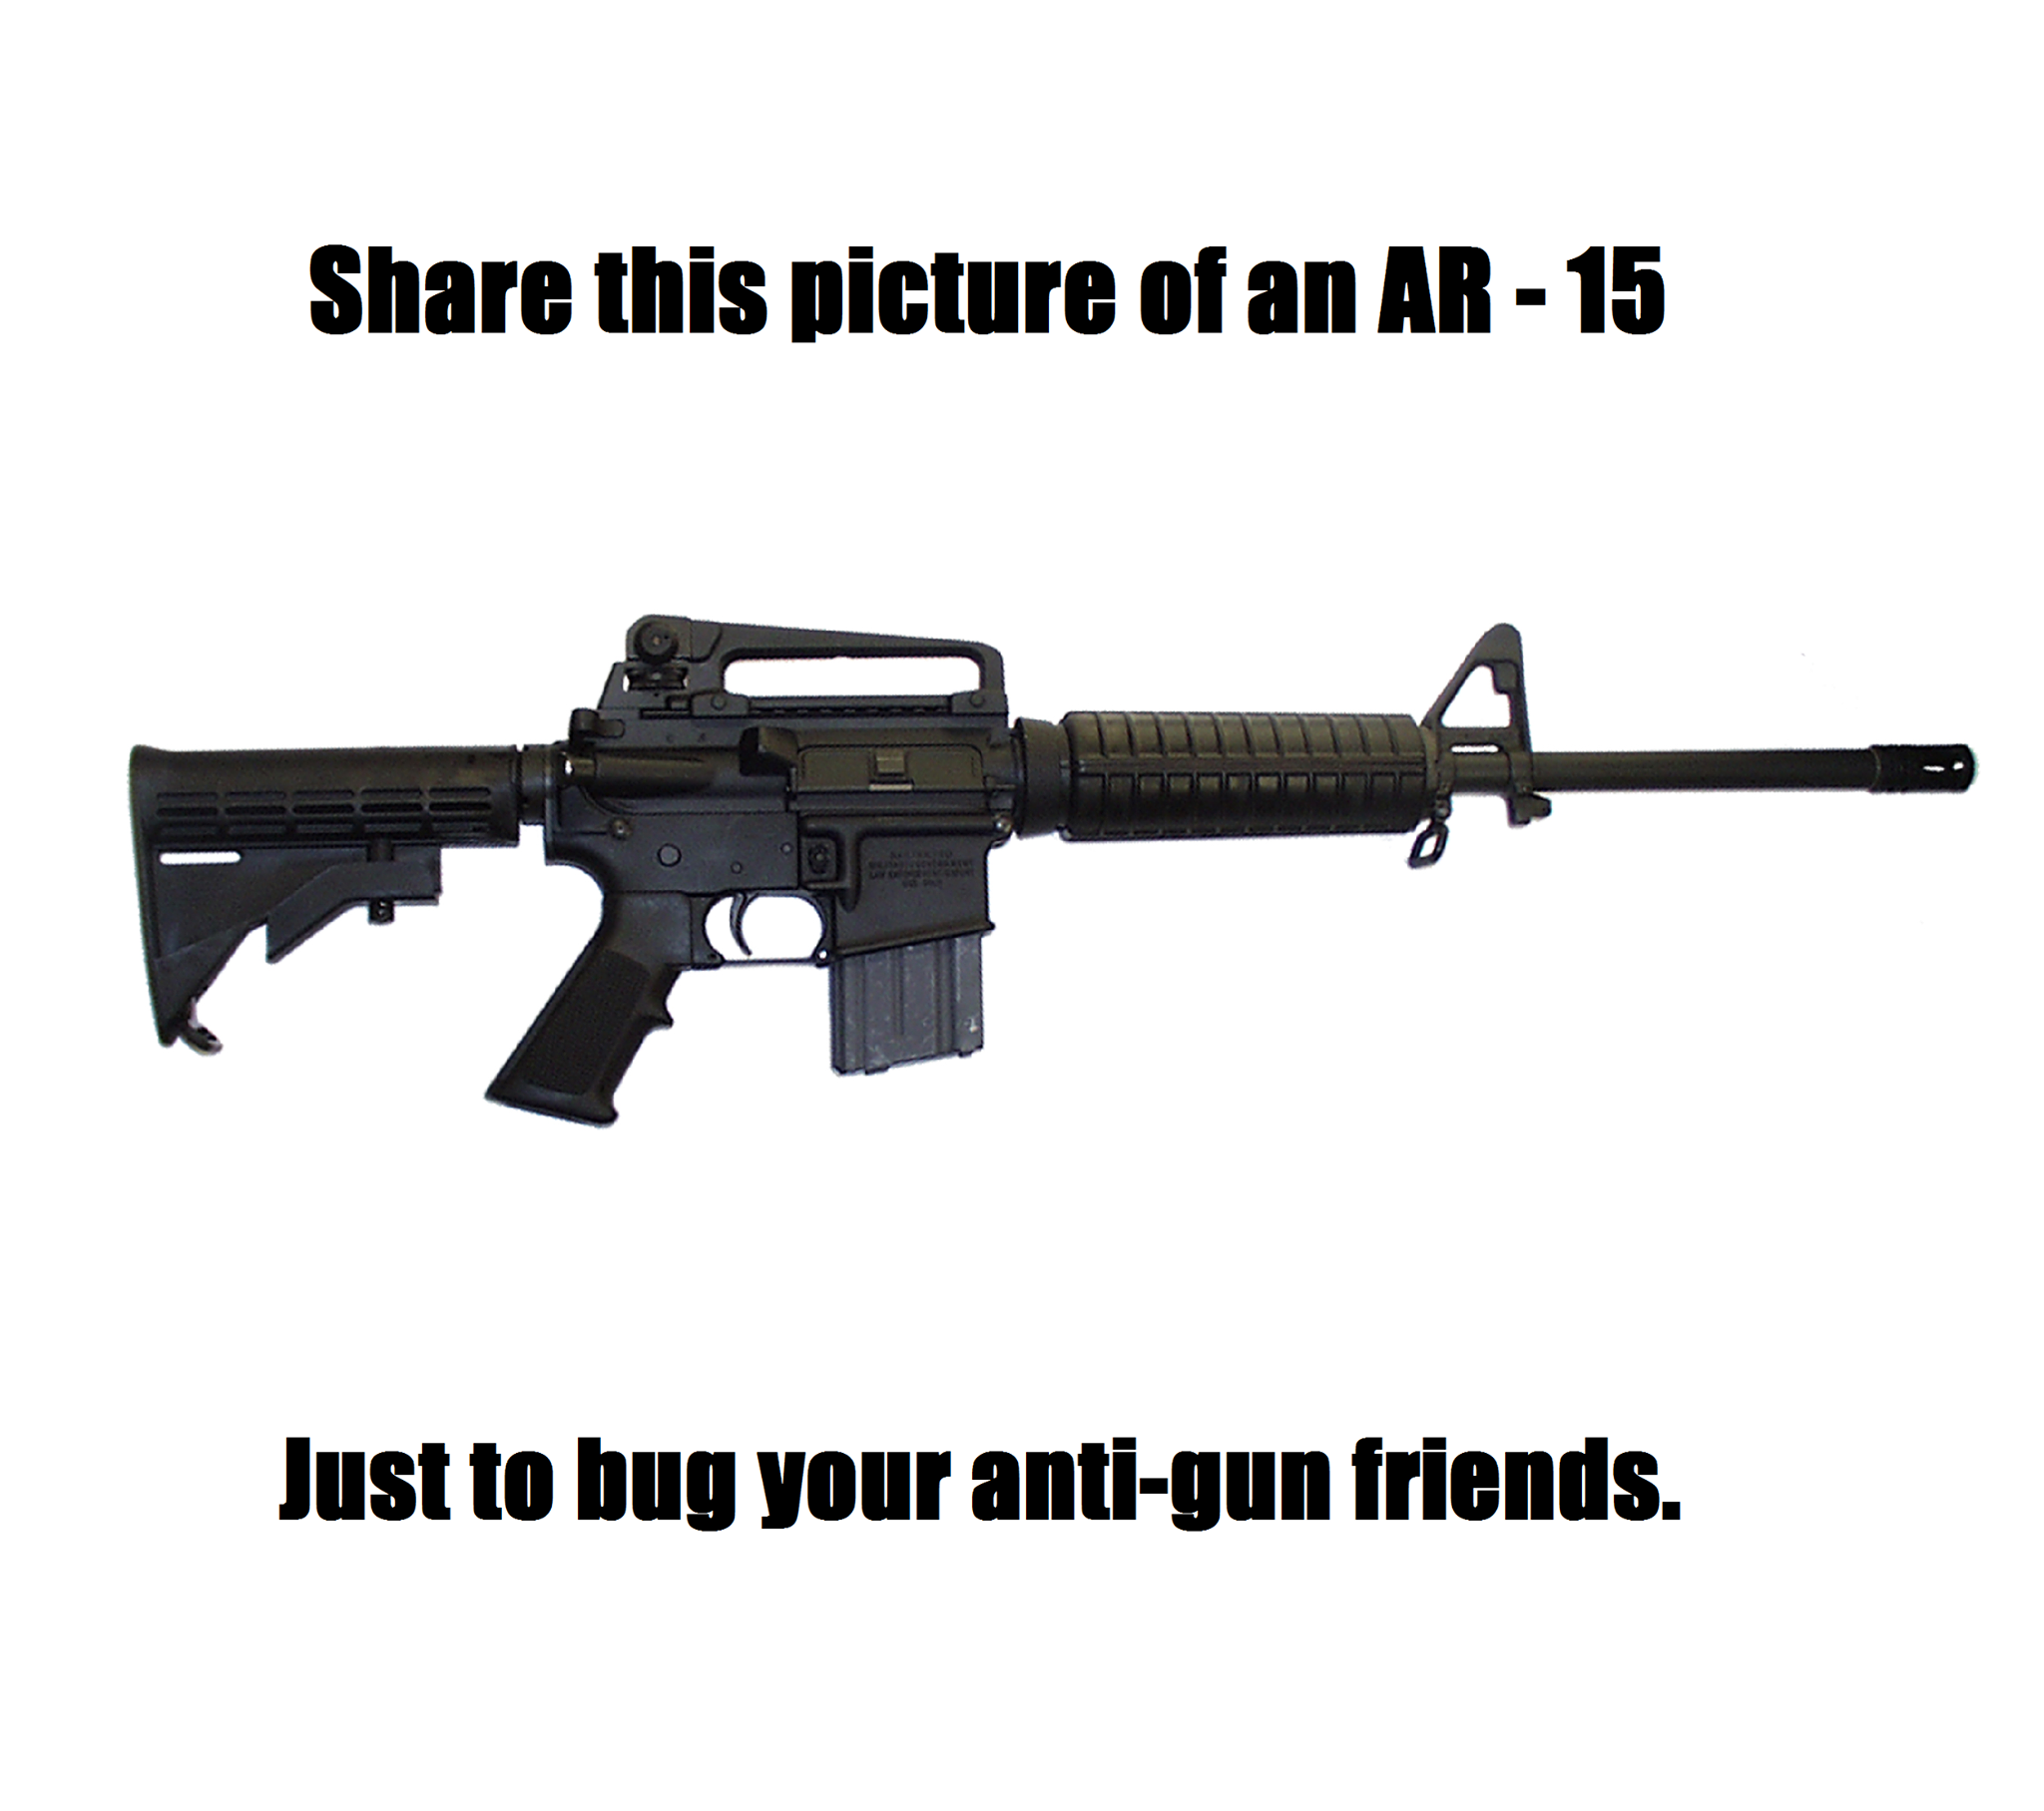 share-this-picture-of-an-ar-15-just-to-bug-your-anti-gun-friends